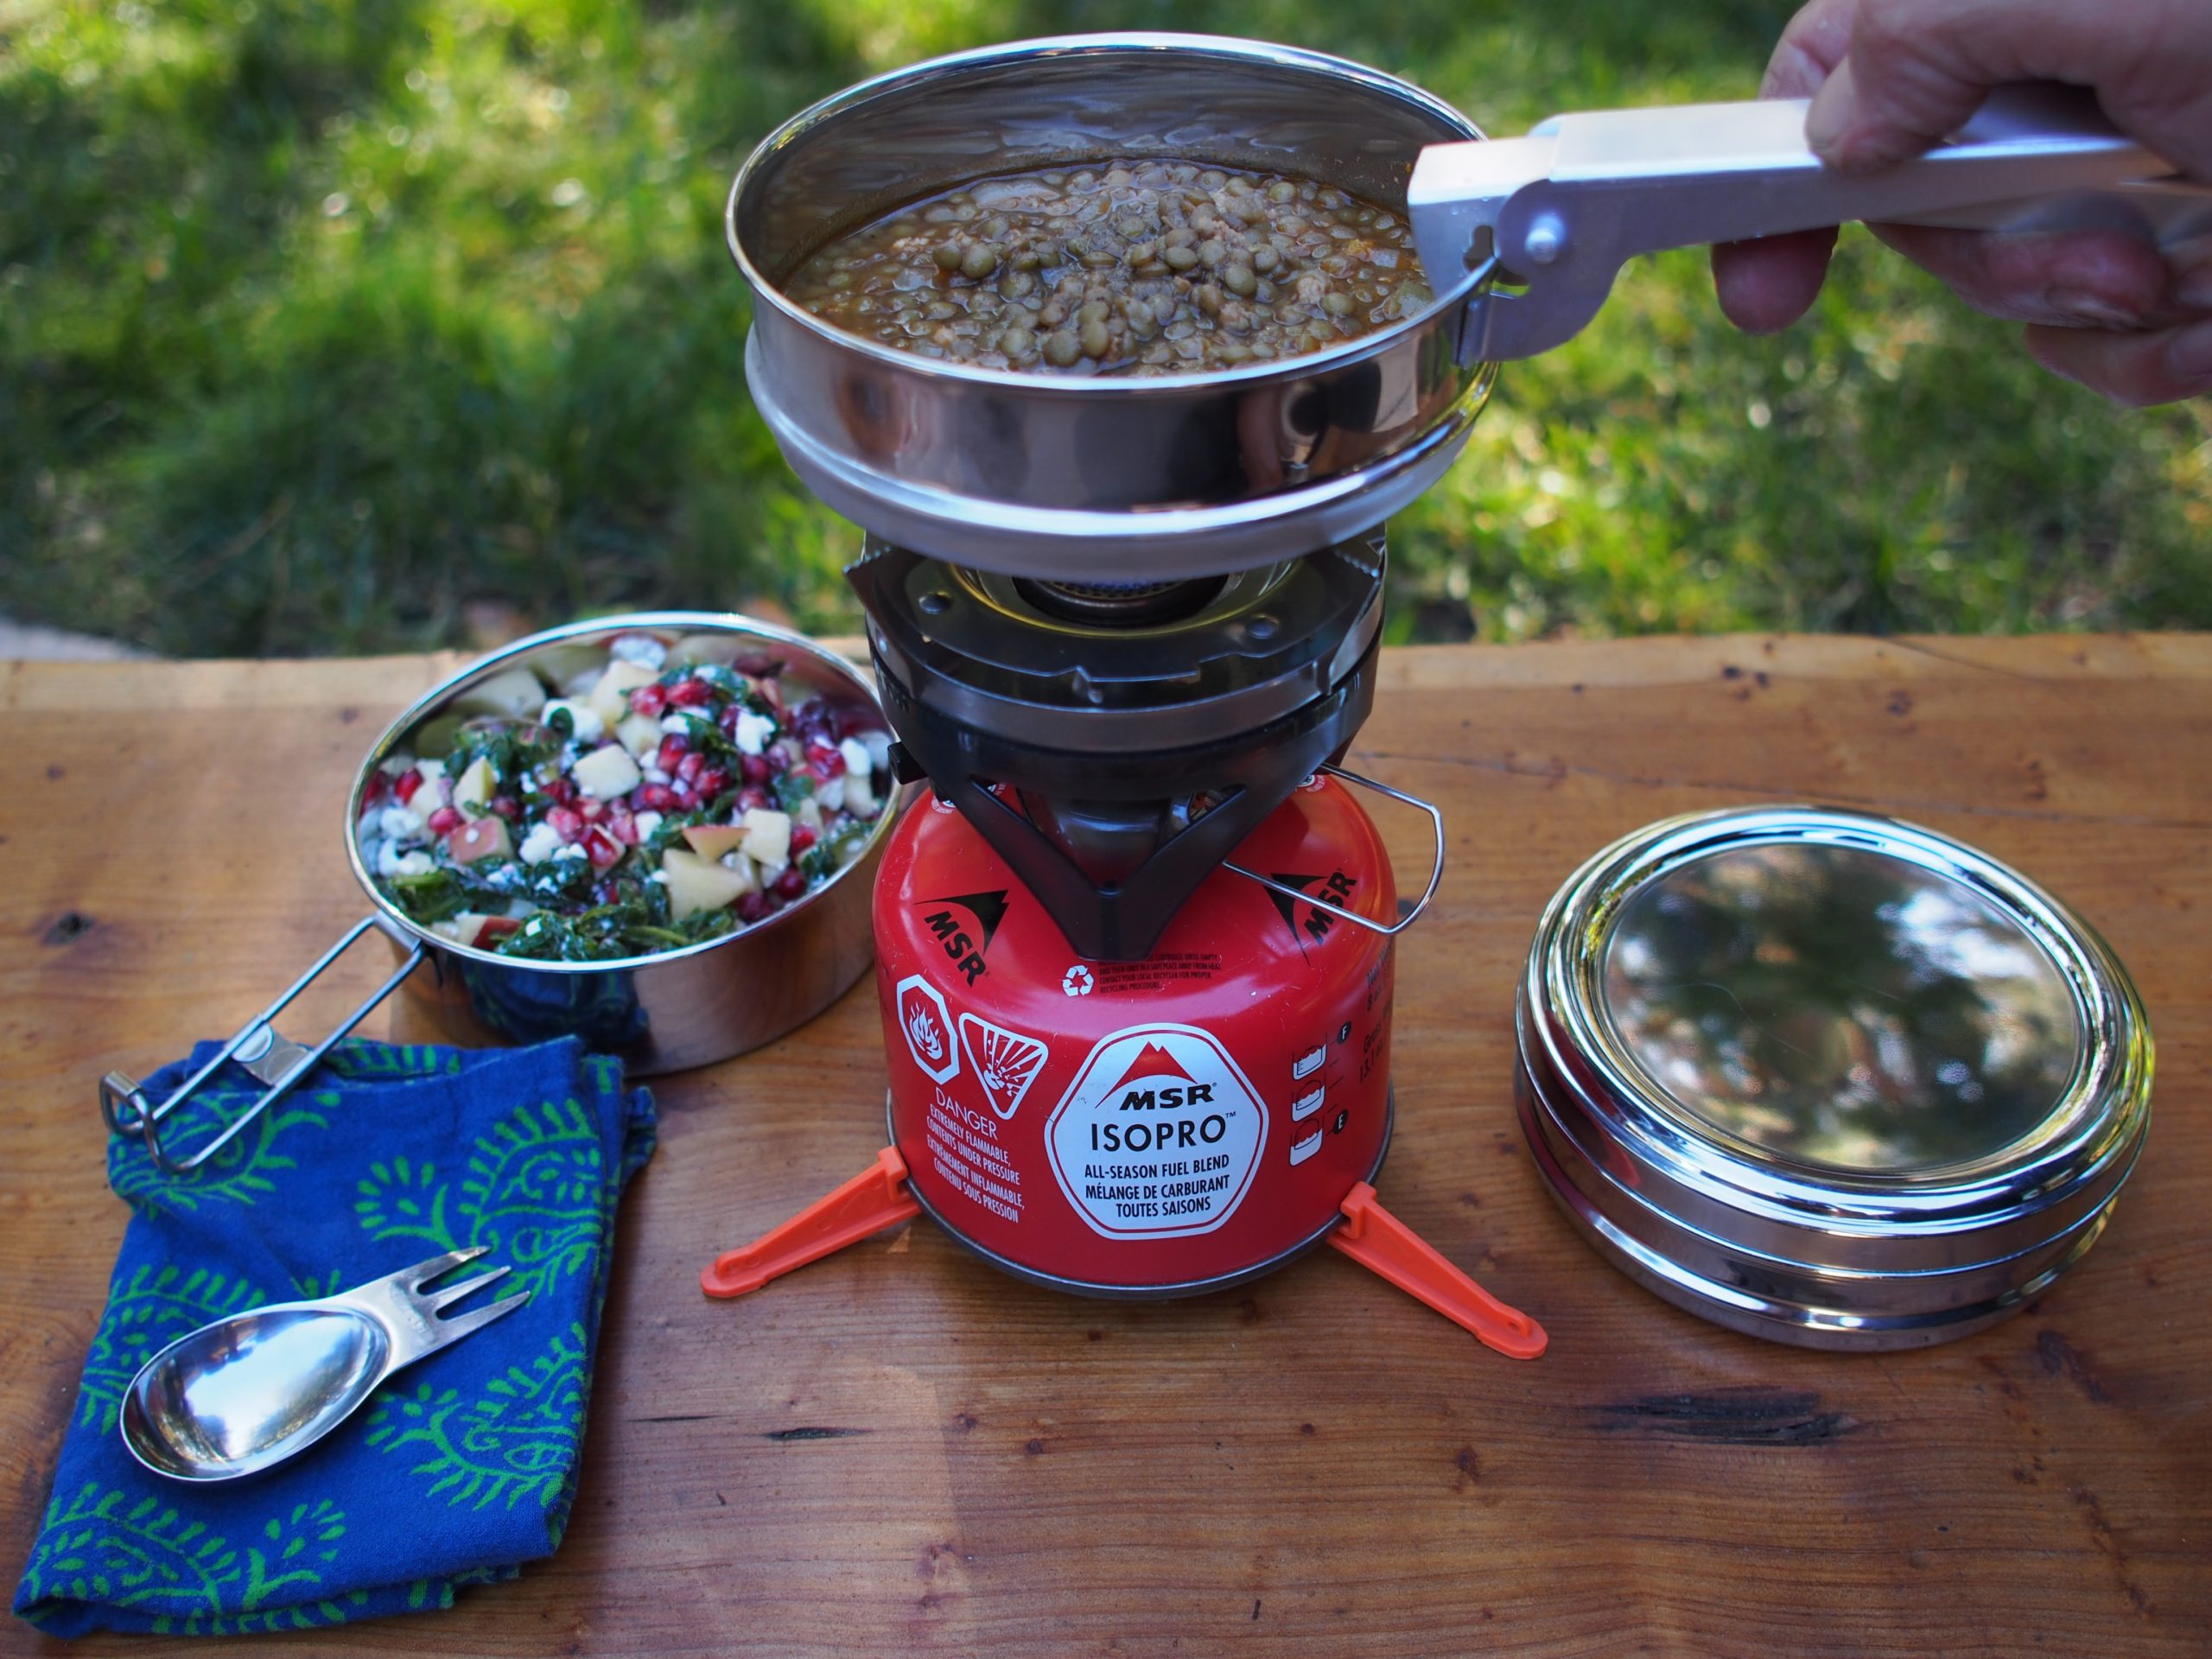 Camping Stoves with gas filled